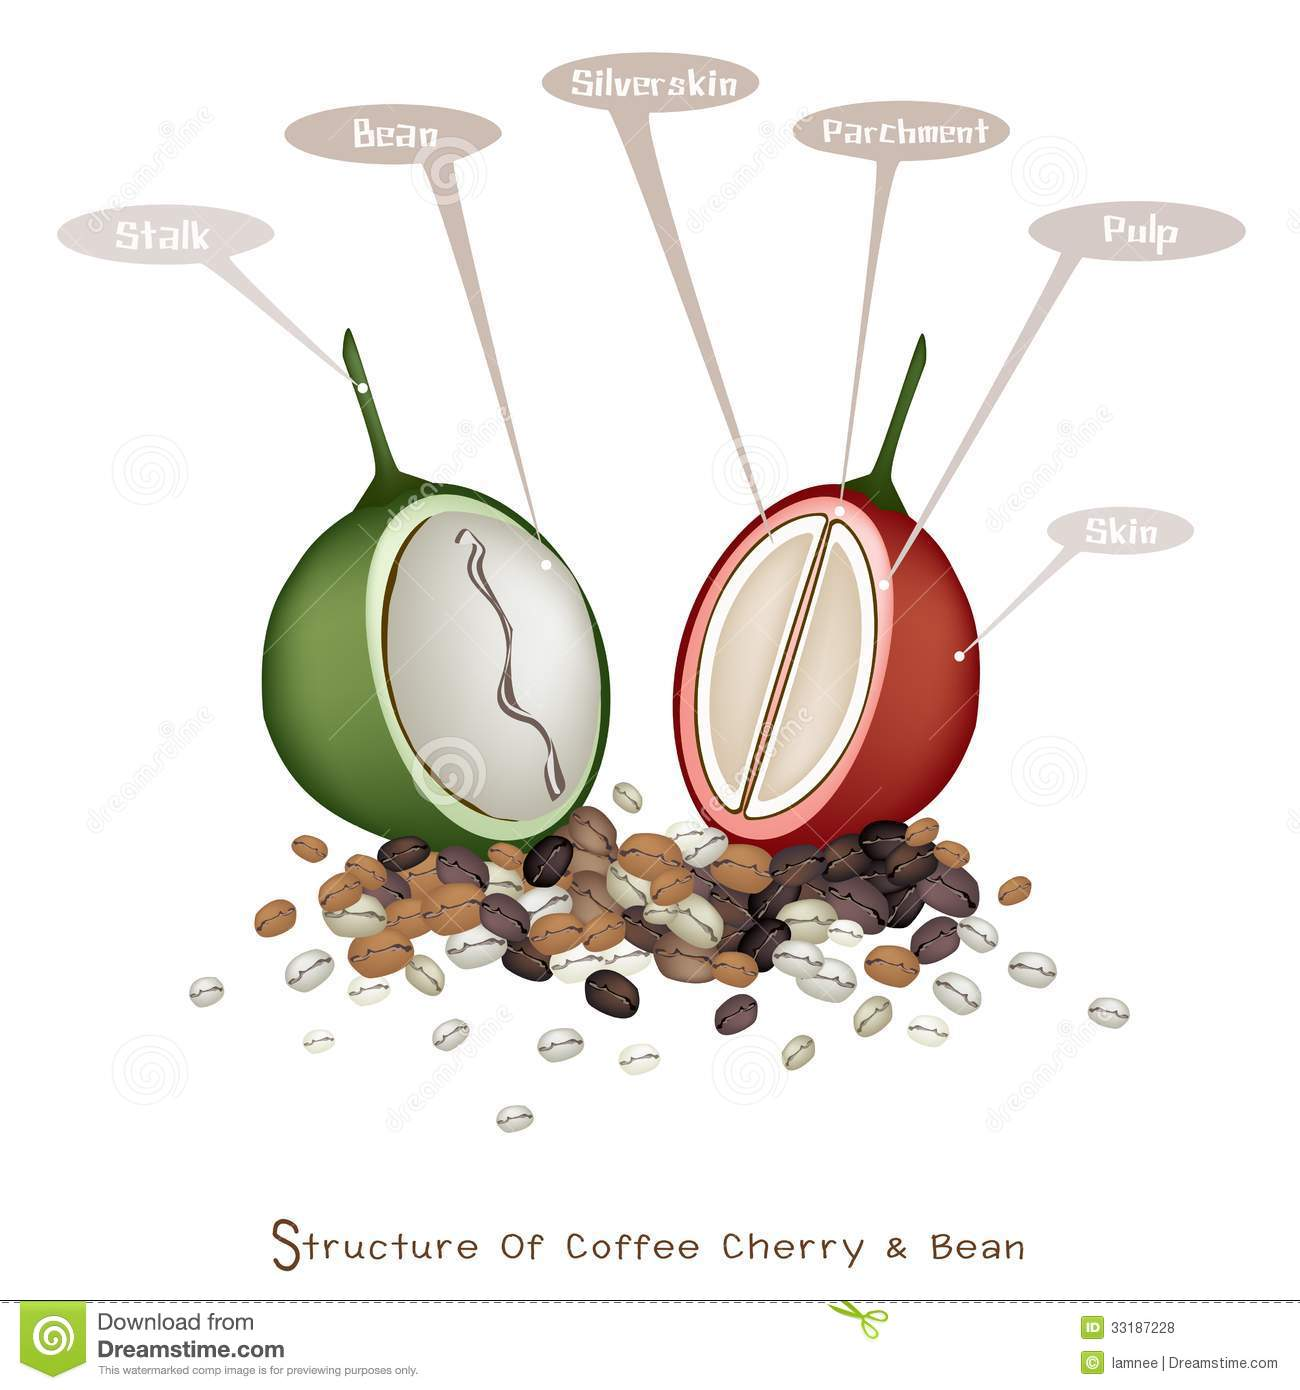 Structure Of Ripe And Unripe Coffee Berries Royalty Free Stock Photos ...